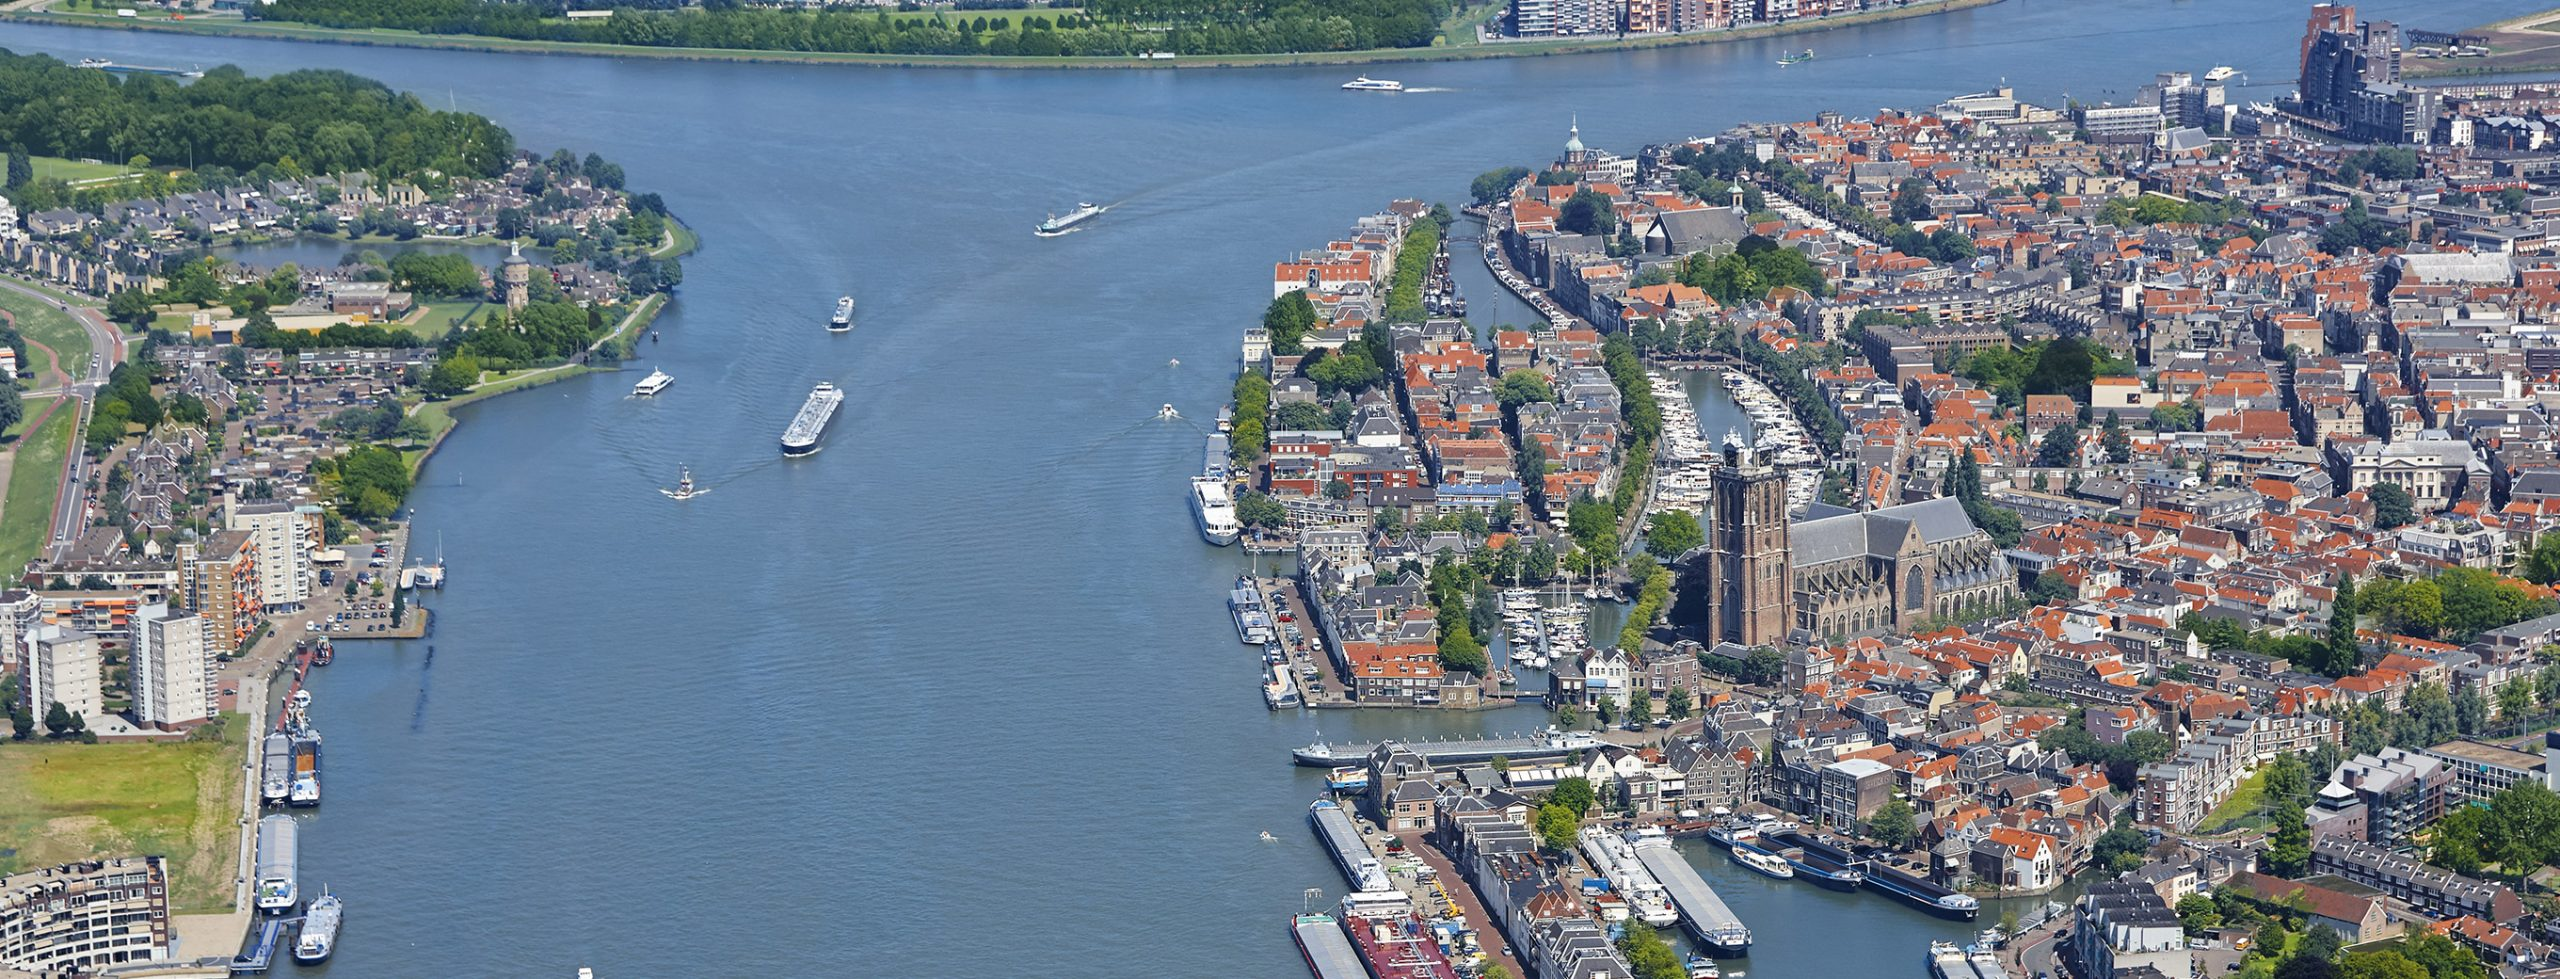 Over Deal Drecht Cities